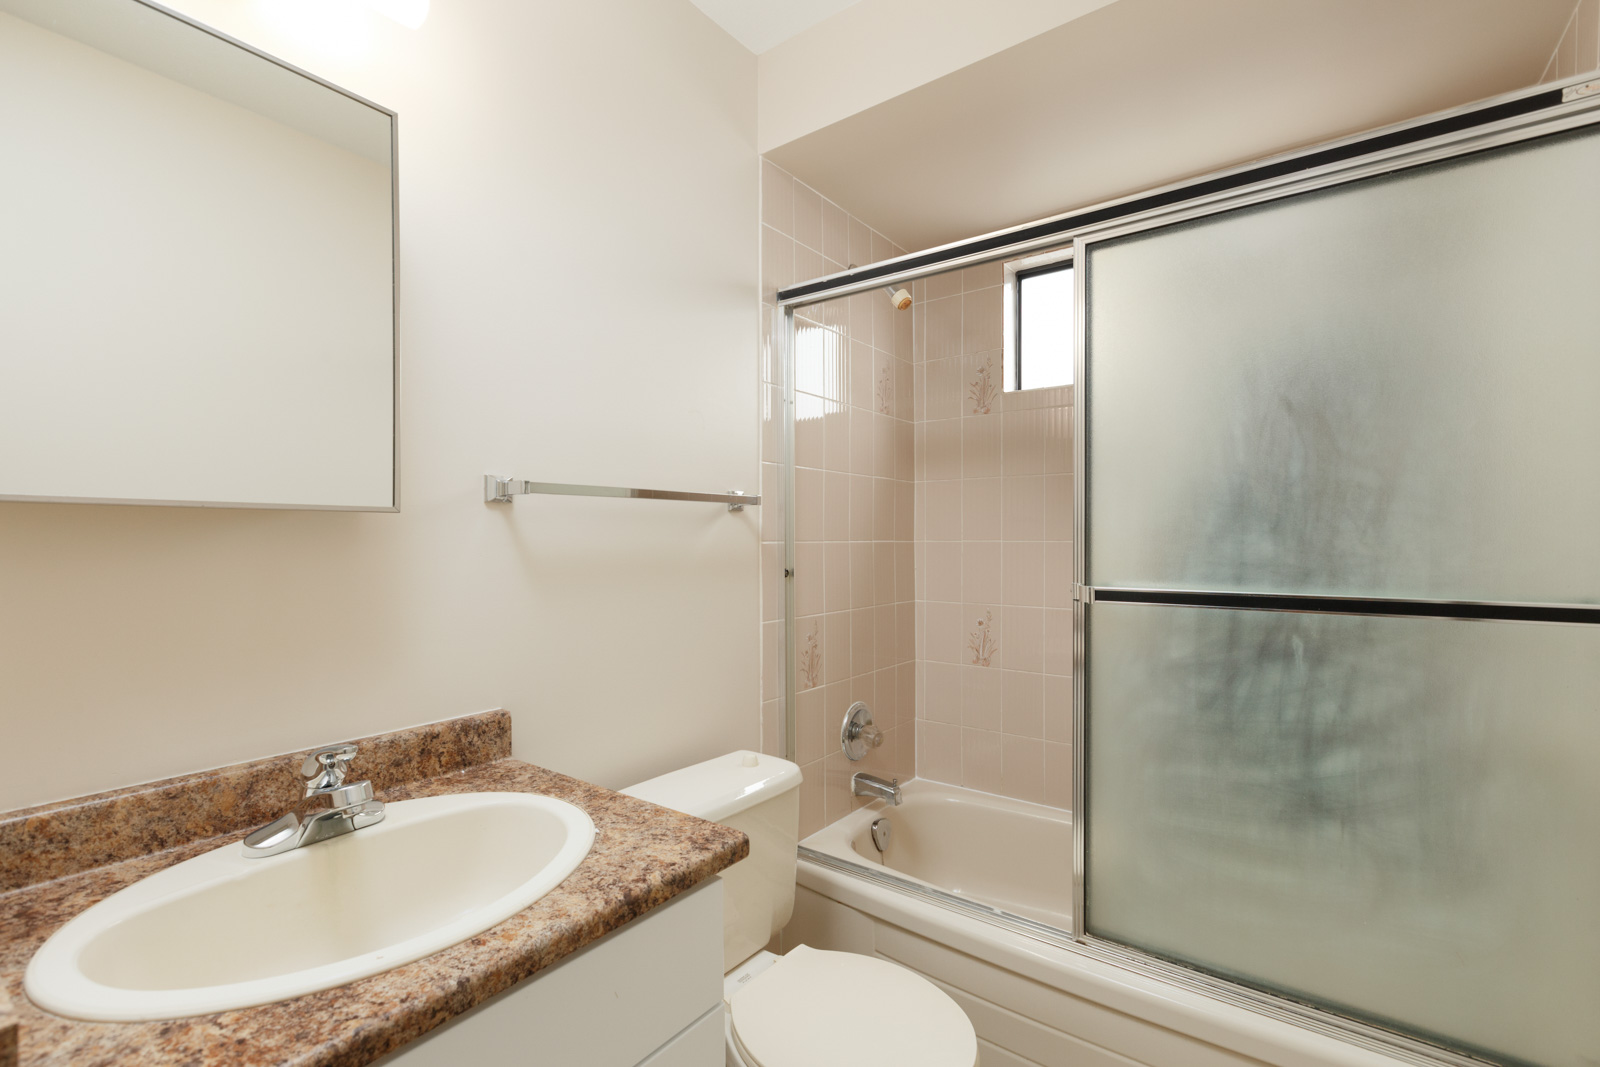 Bathroom with mirror over sink with granite countertops and shower with sliding glass door and window providing fresh air and natural light in a rental home in East Vancouver provided by Birds Nest Properties